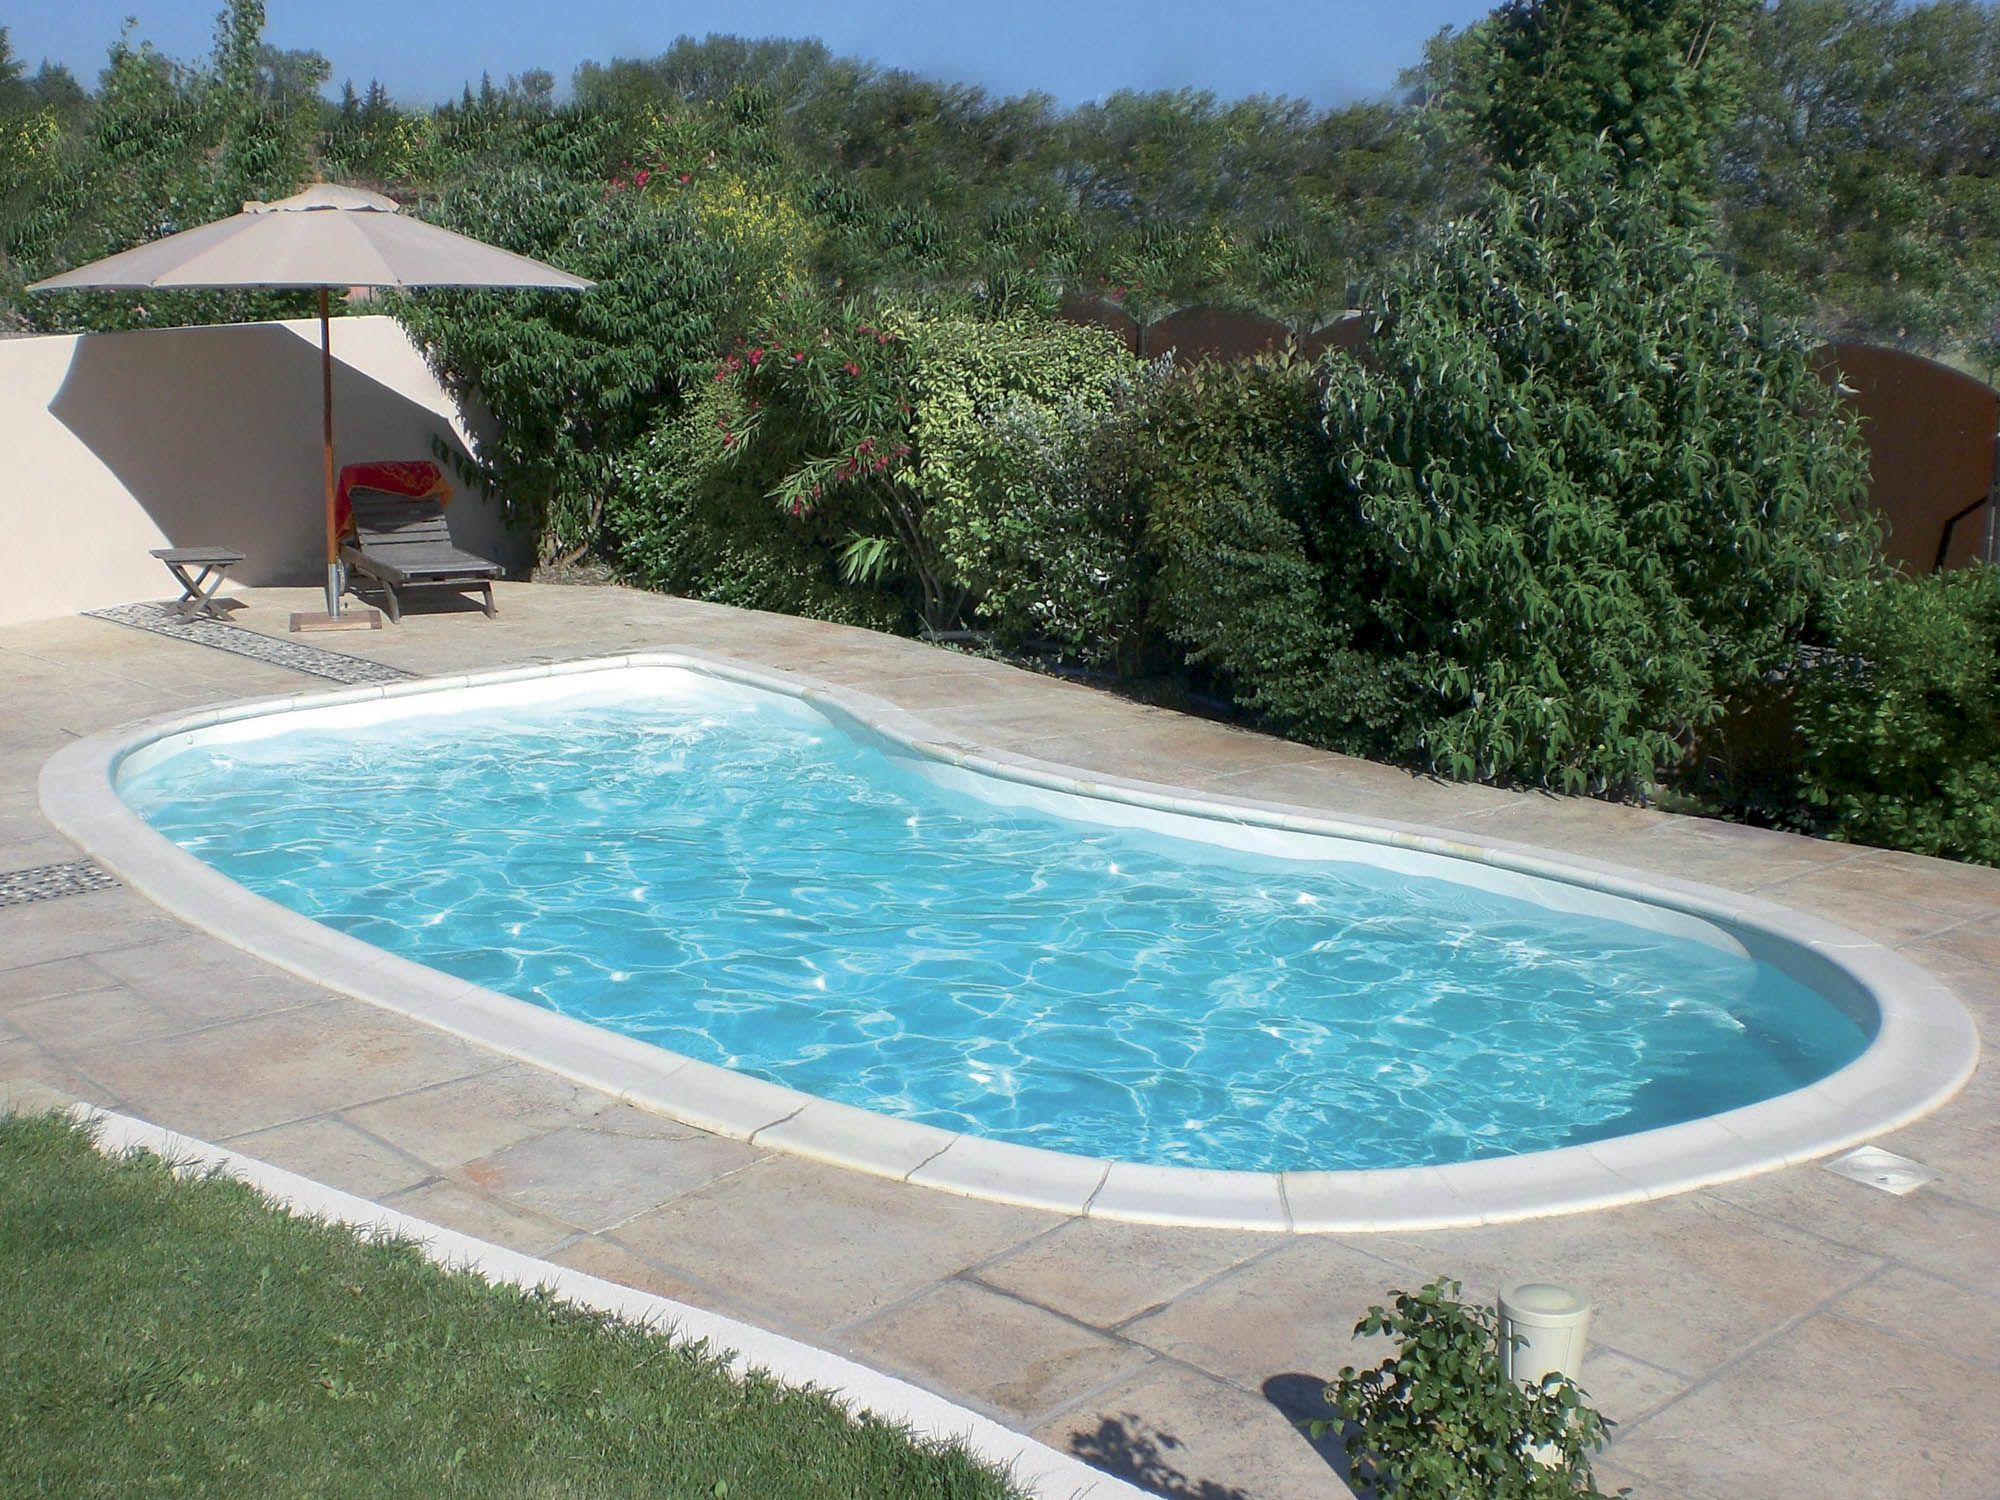 Piscine coque polyester ovation piscine haricot for Piscine 10x5 coque